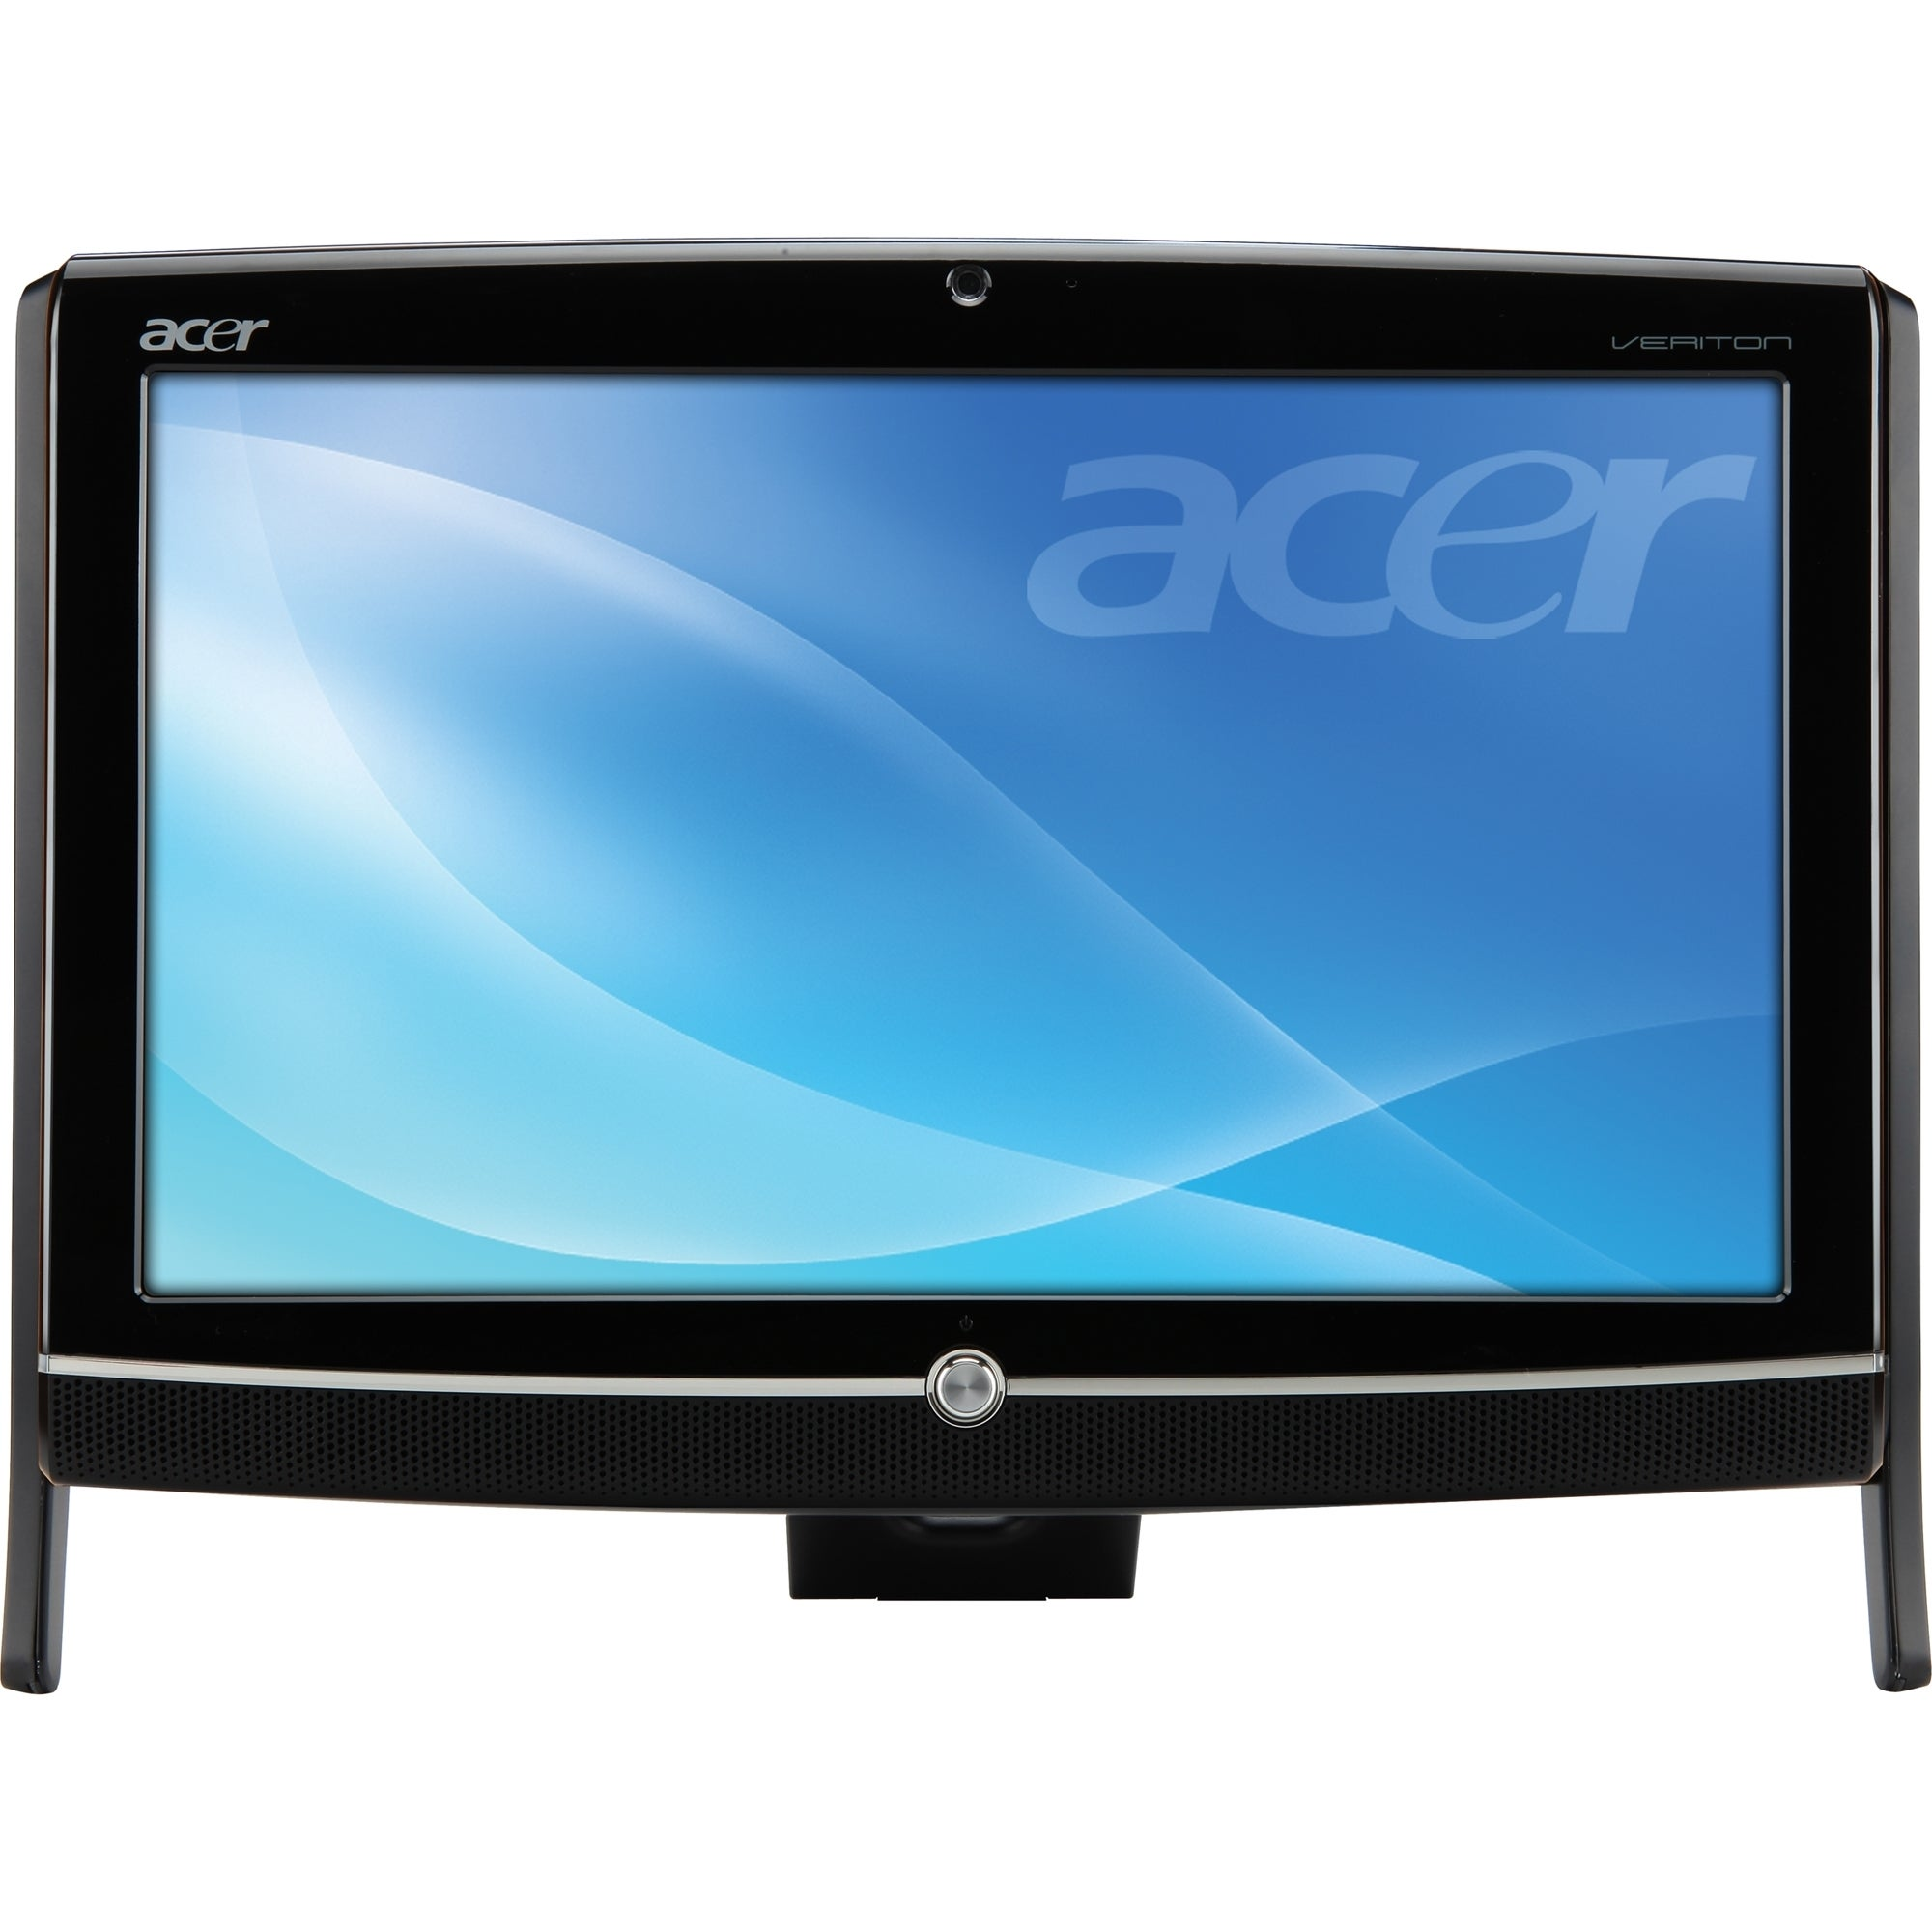 Acer Veriton Z290G All-in-One Computer - Intel Atom D525 1 80 GHz - 4